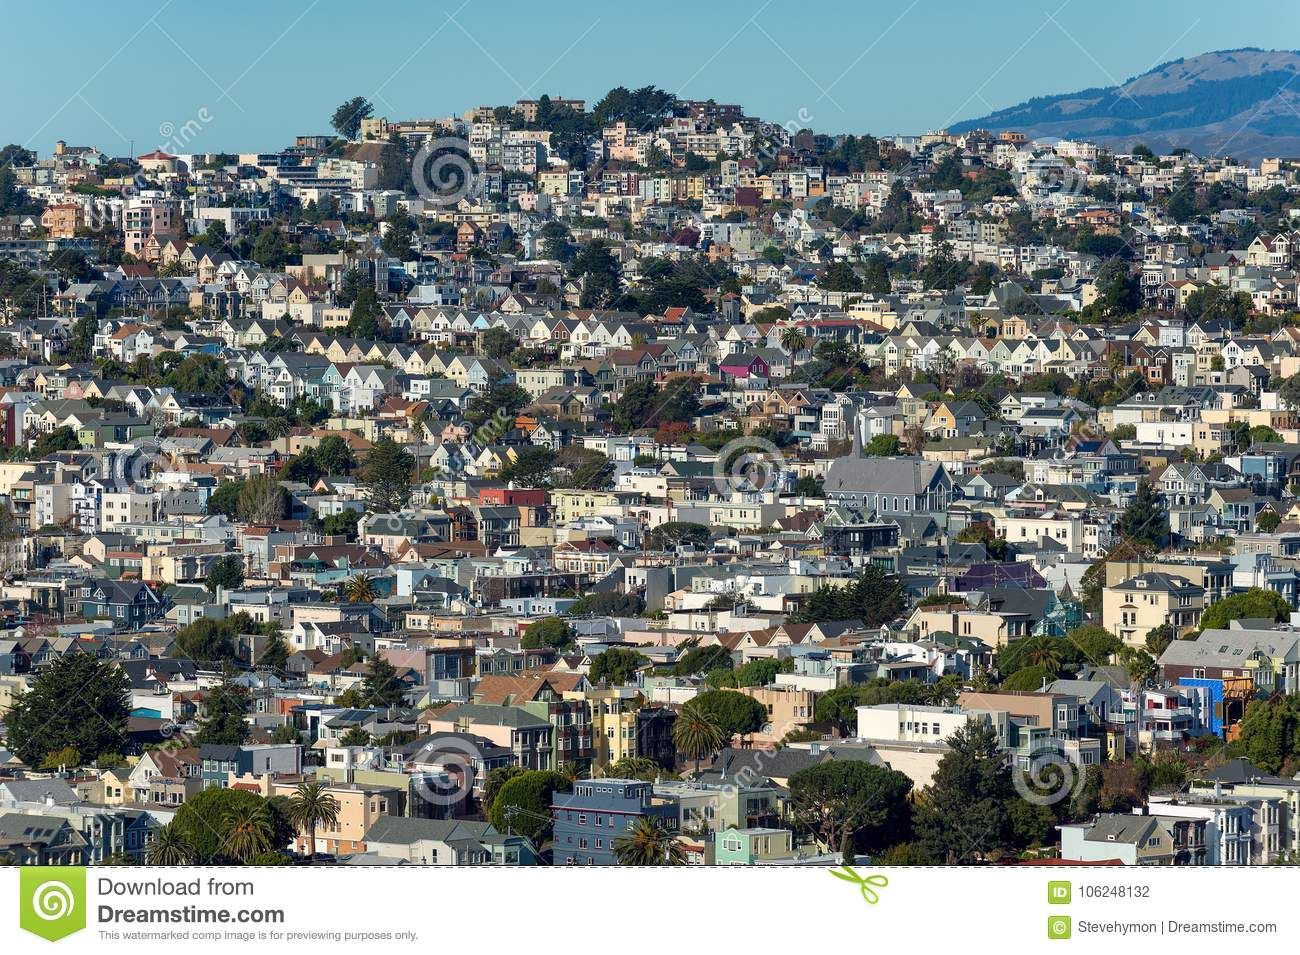 Casas do montanhês de San Francisco -- Dolores Heights, Cole Valley & Corona Heights